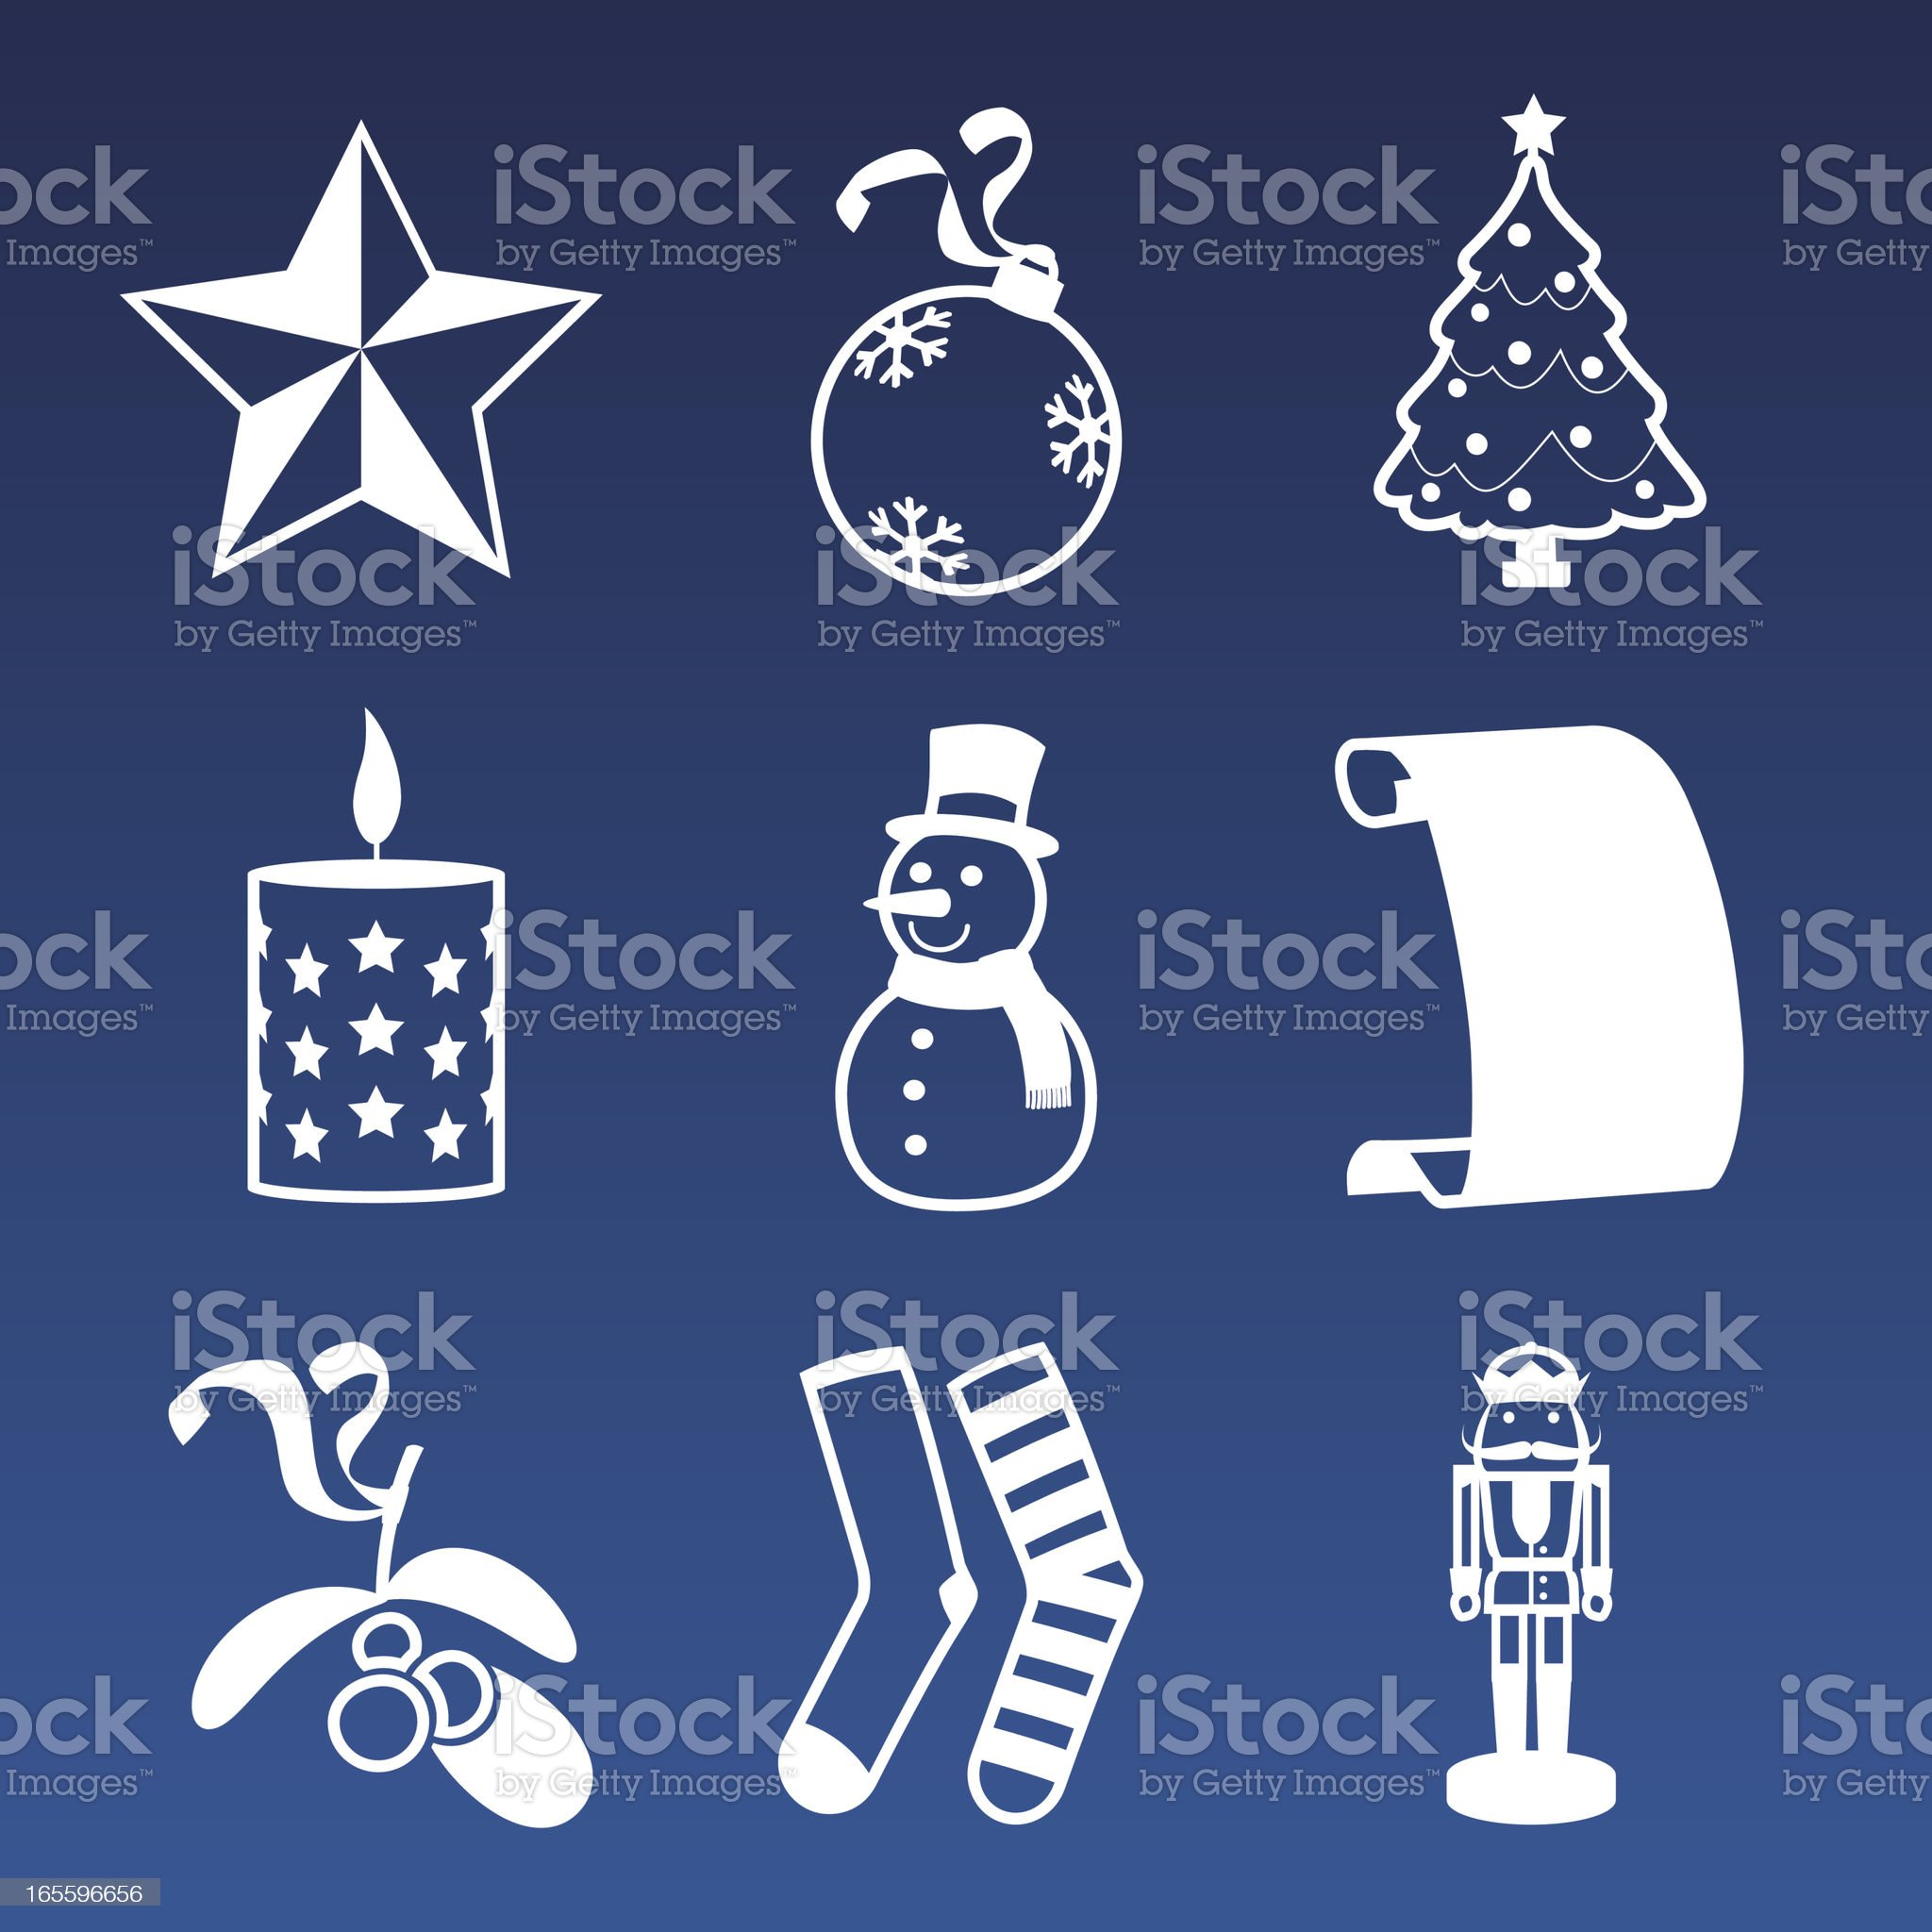 Simple Christmas Icon Set royalty-free stock vector art